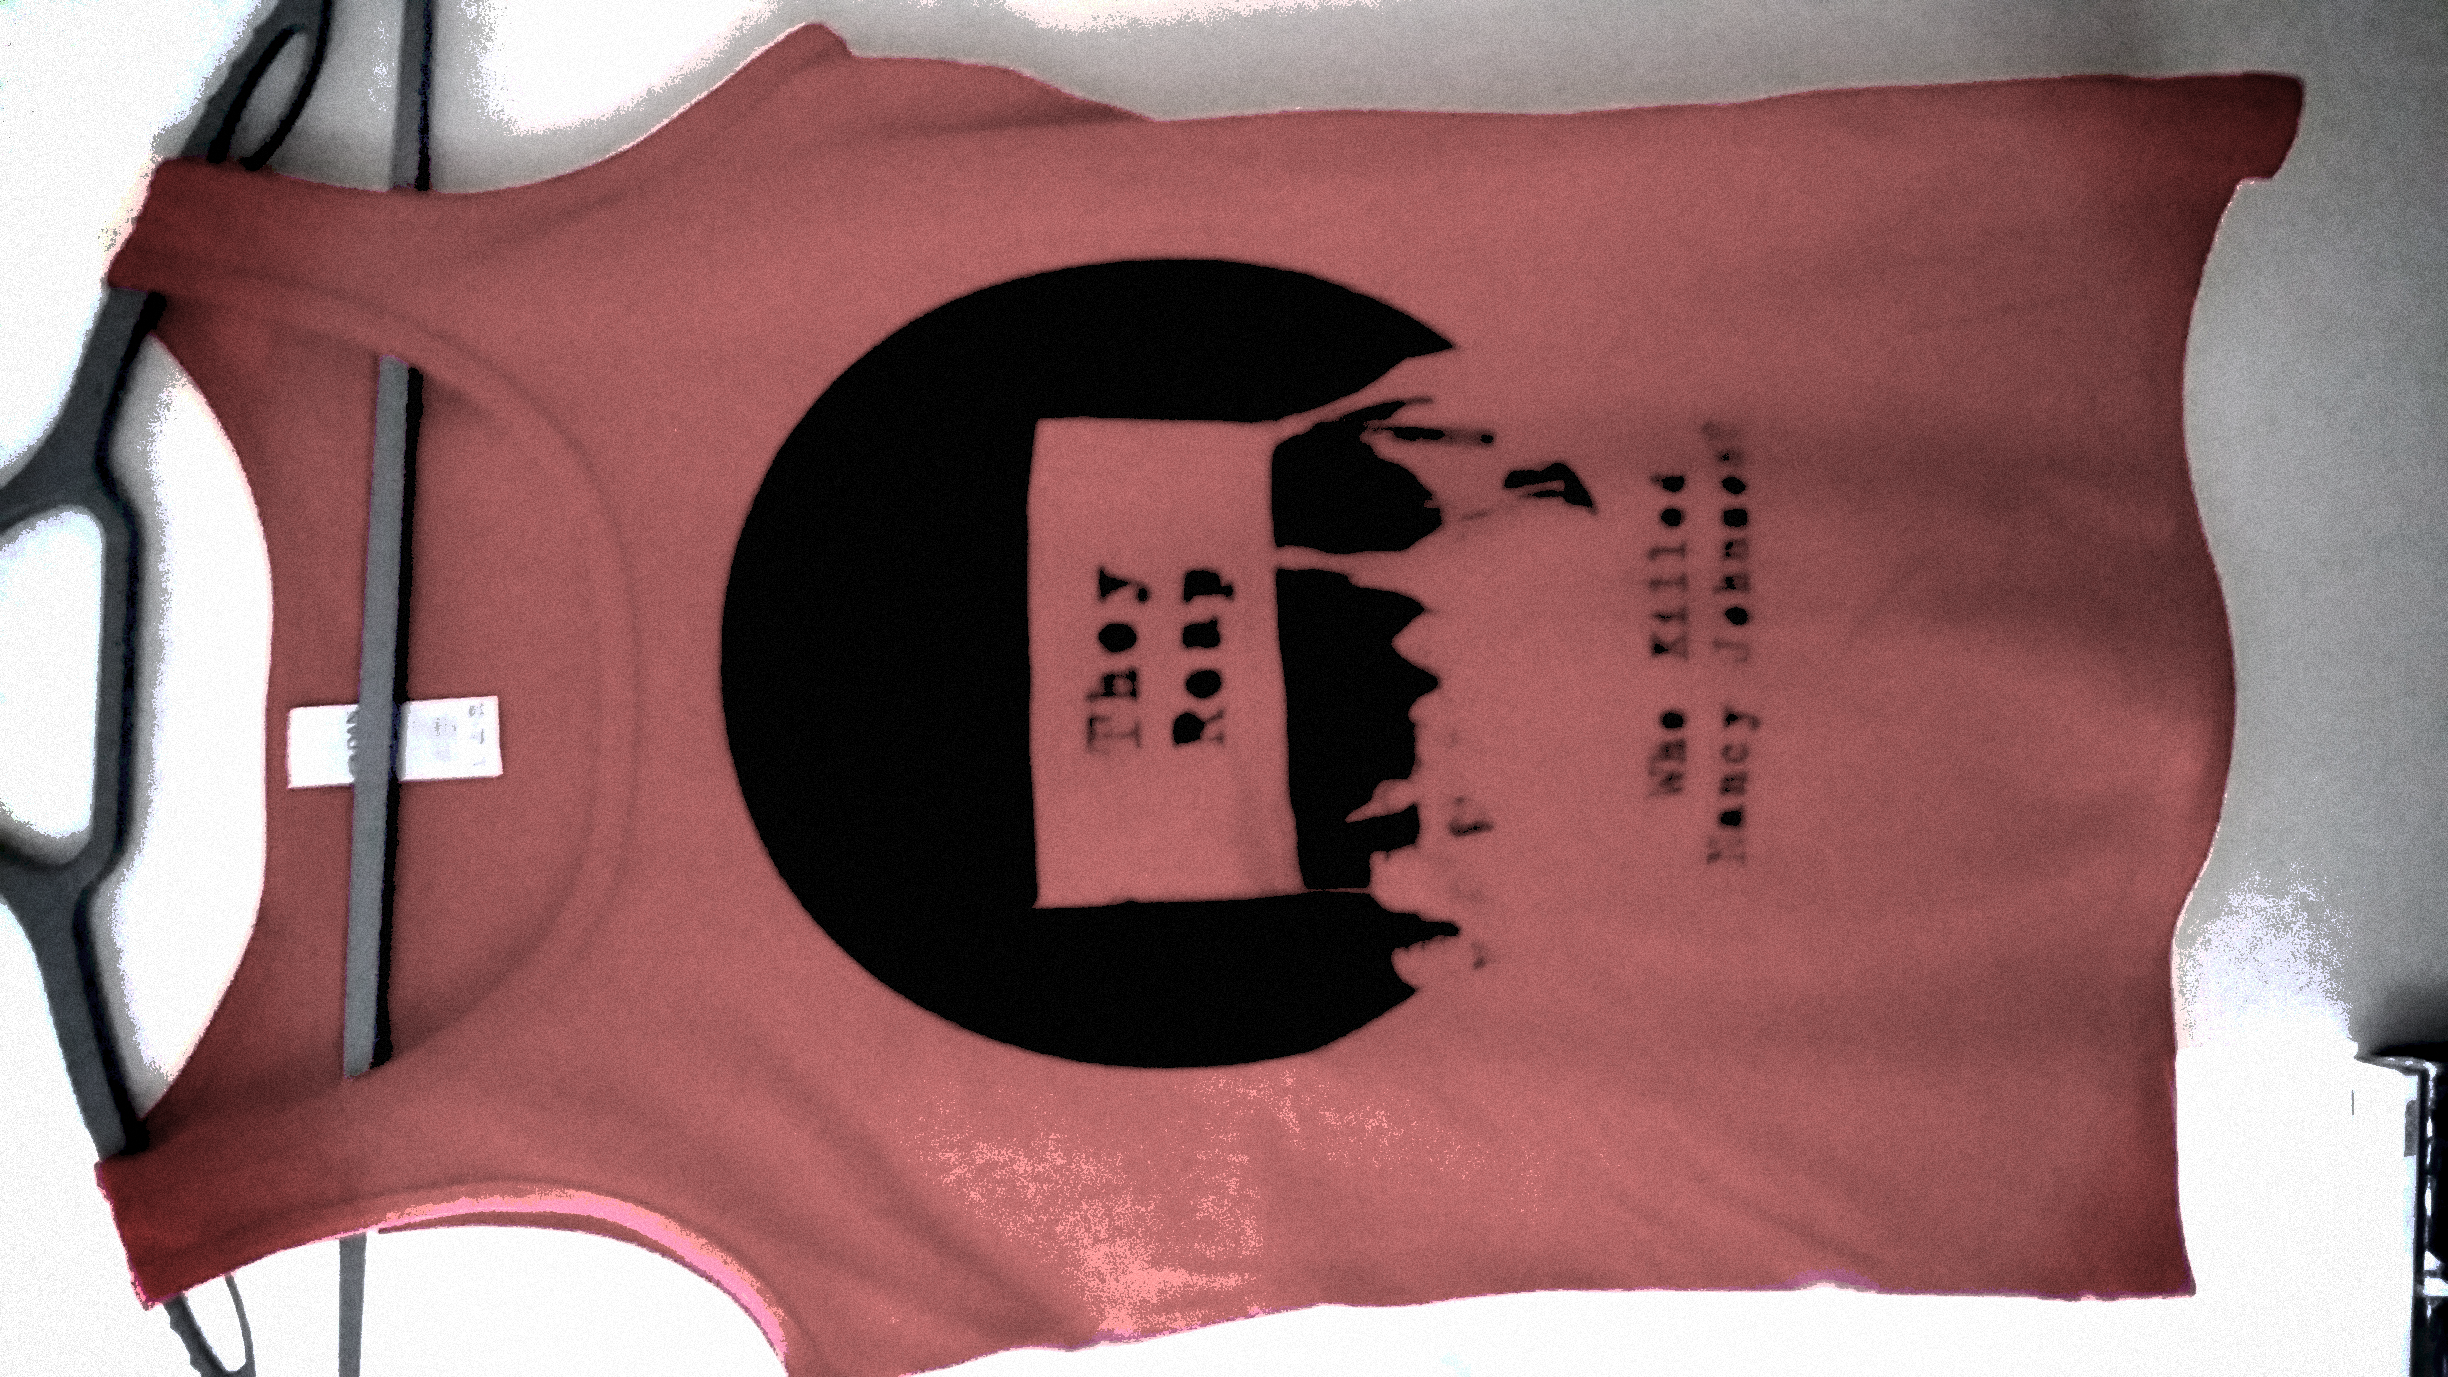 Red They Reap Womens Tank Top - Limited Edition - Who Killed Nancy Johnson?